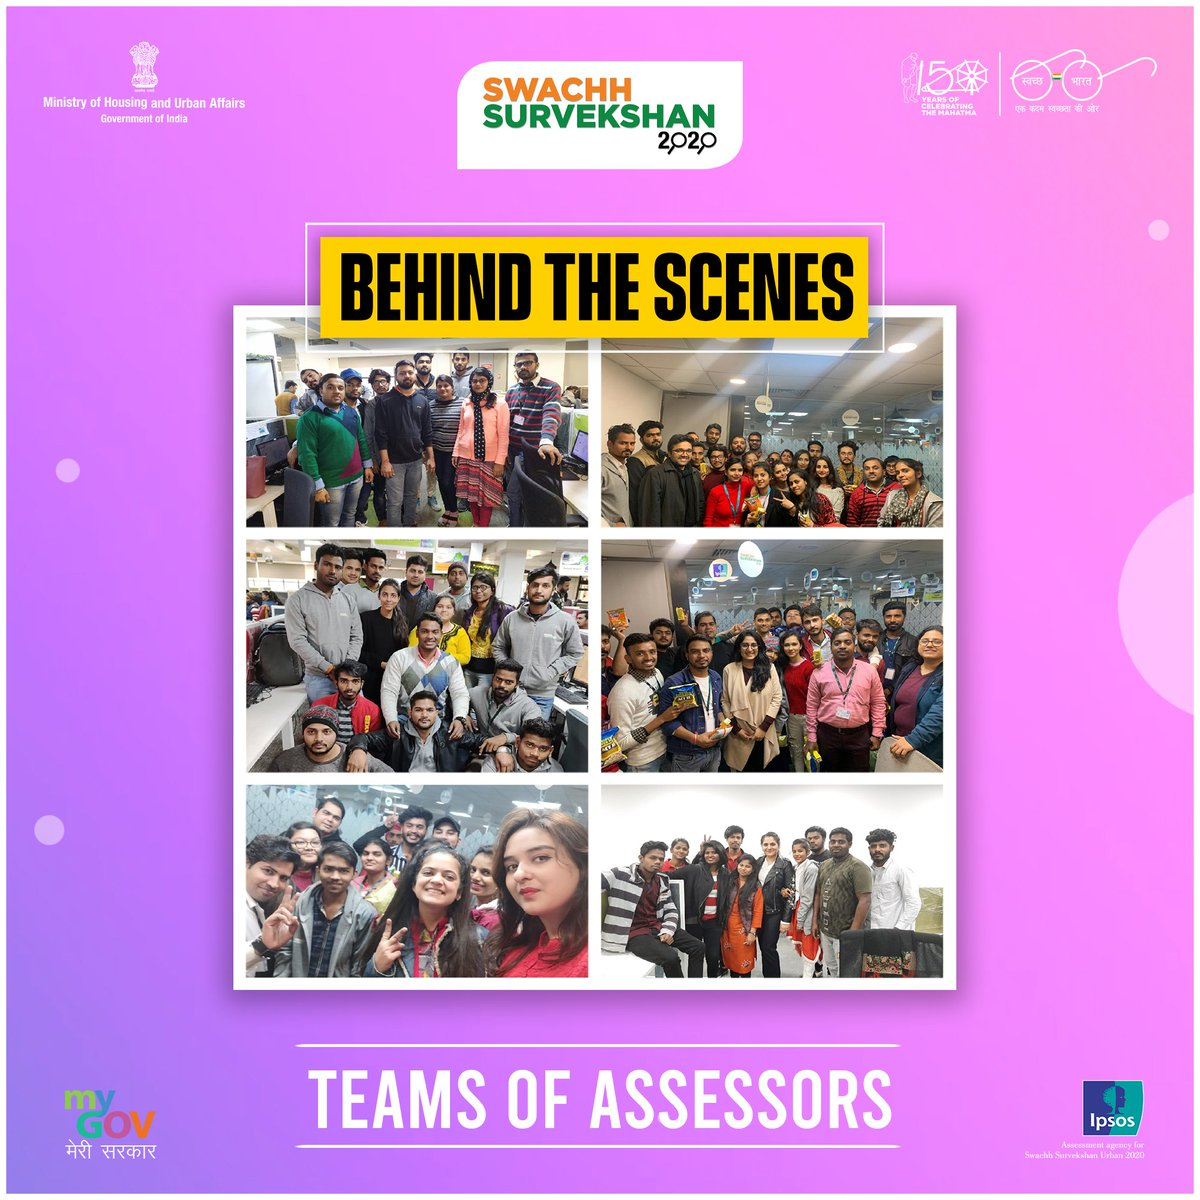 Take a peak #BehindTheScenes of #SwachhSurvekshan2020.  Meet the different teams of assessors! They are assessing over 317GB of documents submitted by various ULBs!  #SwachhBharat #BTS https://t.co/sK5853IarK